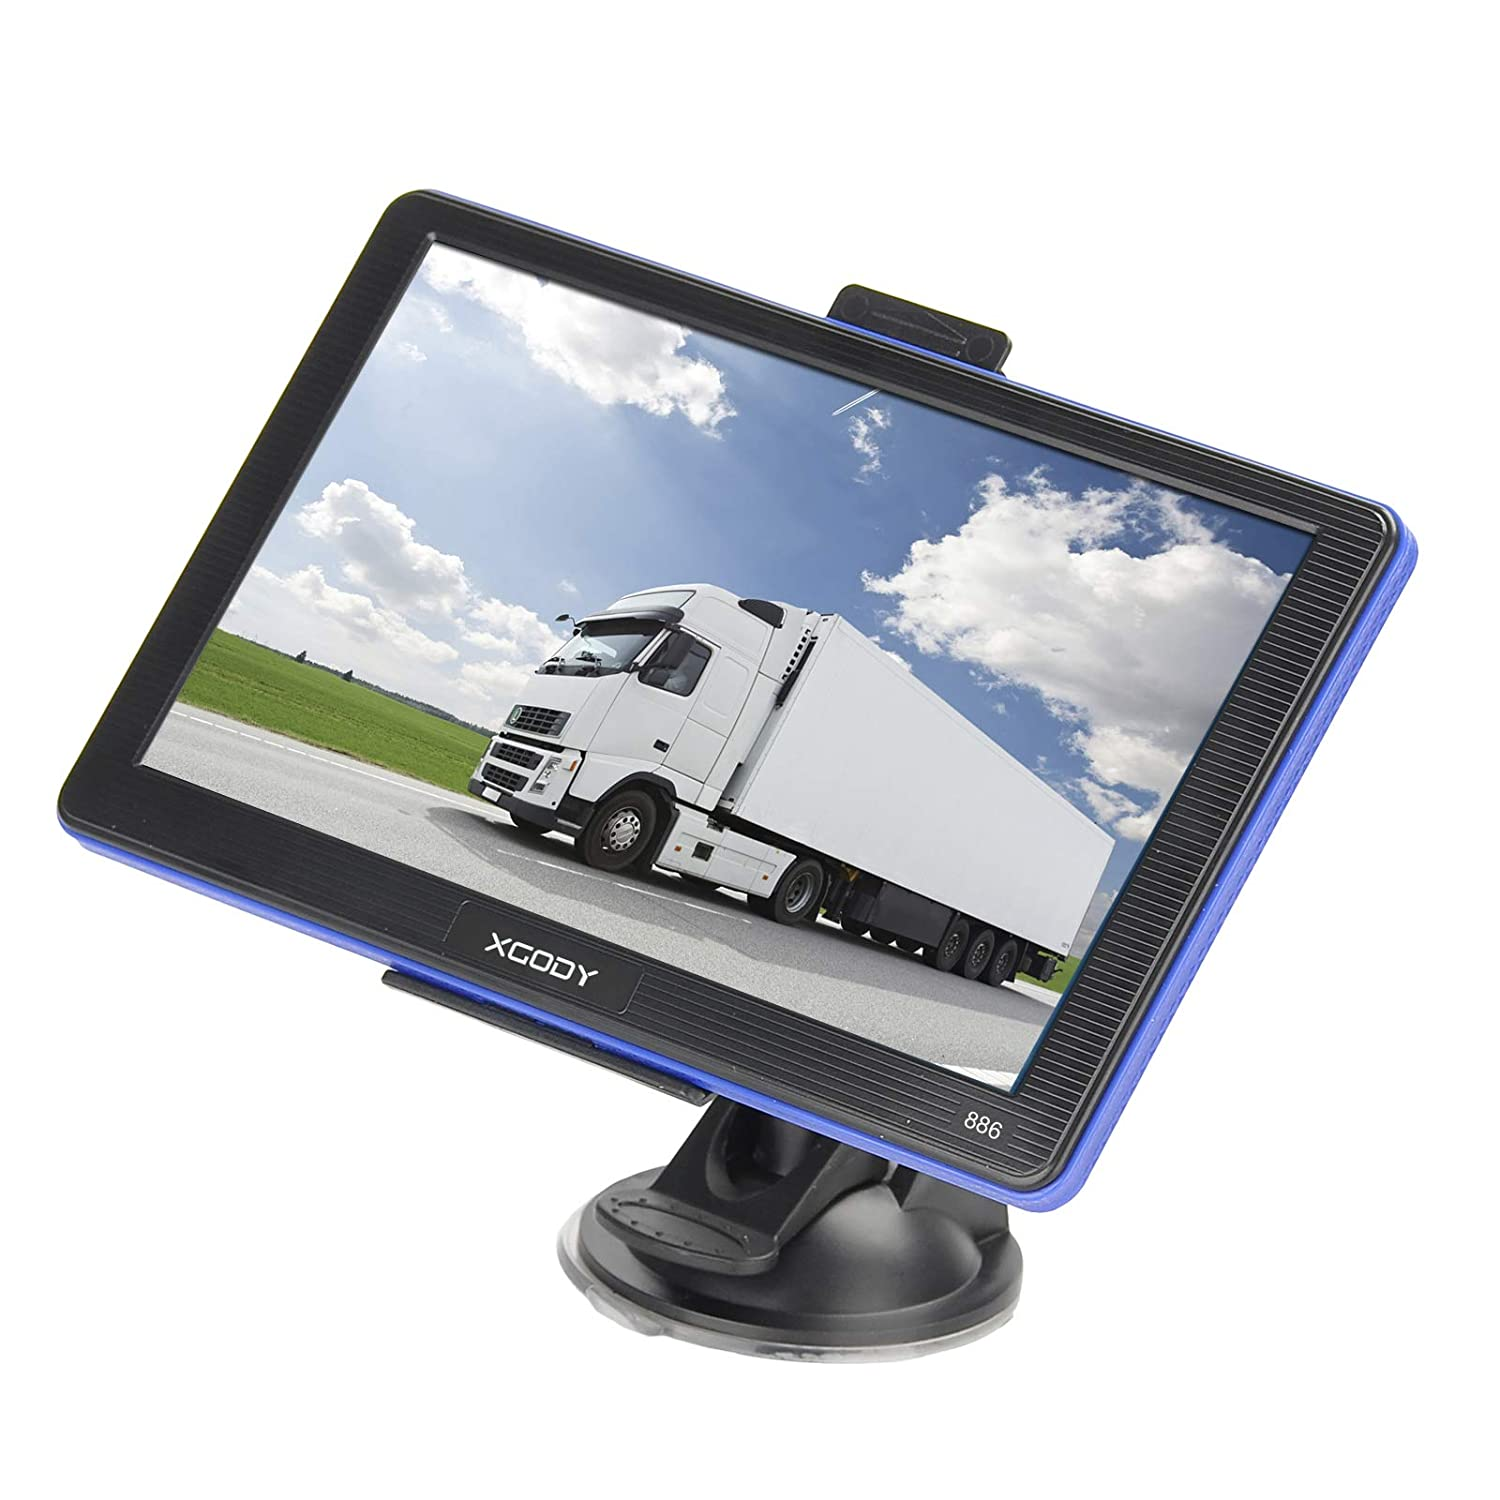 Truck GPS Navigation System Xgody 886 7 Inch Capacitive Touch Screen SAT NAV Navigator for Car with Lifetime US Maps Updated Sunshade Support Speed and Red light Warning Shenzhen Xin Sheng Shang Technology Co. Ltd 886BT with sunshade